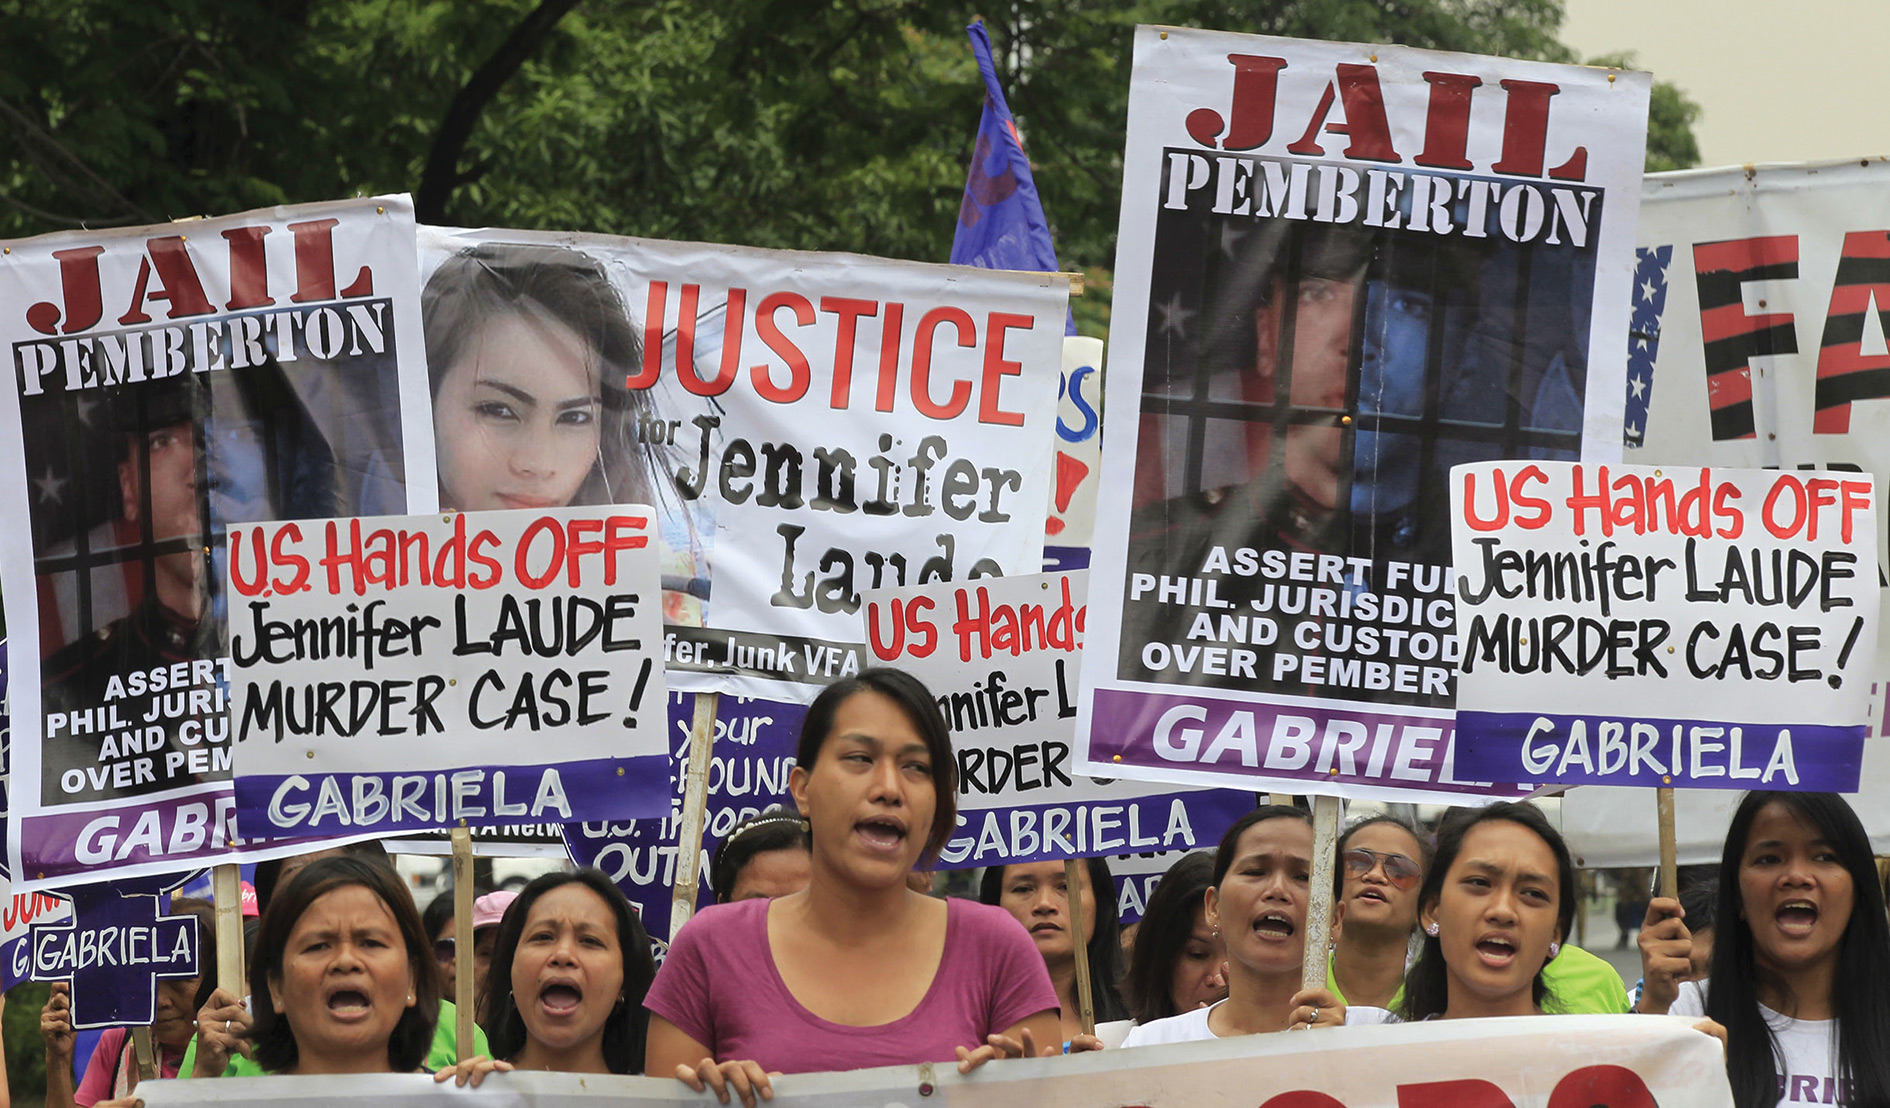 Activists in Manila protest against the murder of Filipina trans  woman  Jennifer Laude. US marine Joseph Scott Pemberton, who strangled her, claimed 'trans panic' in his defence.